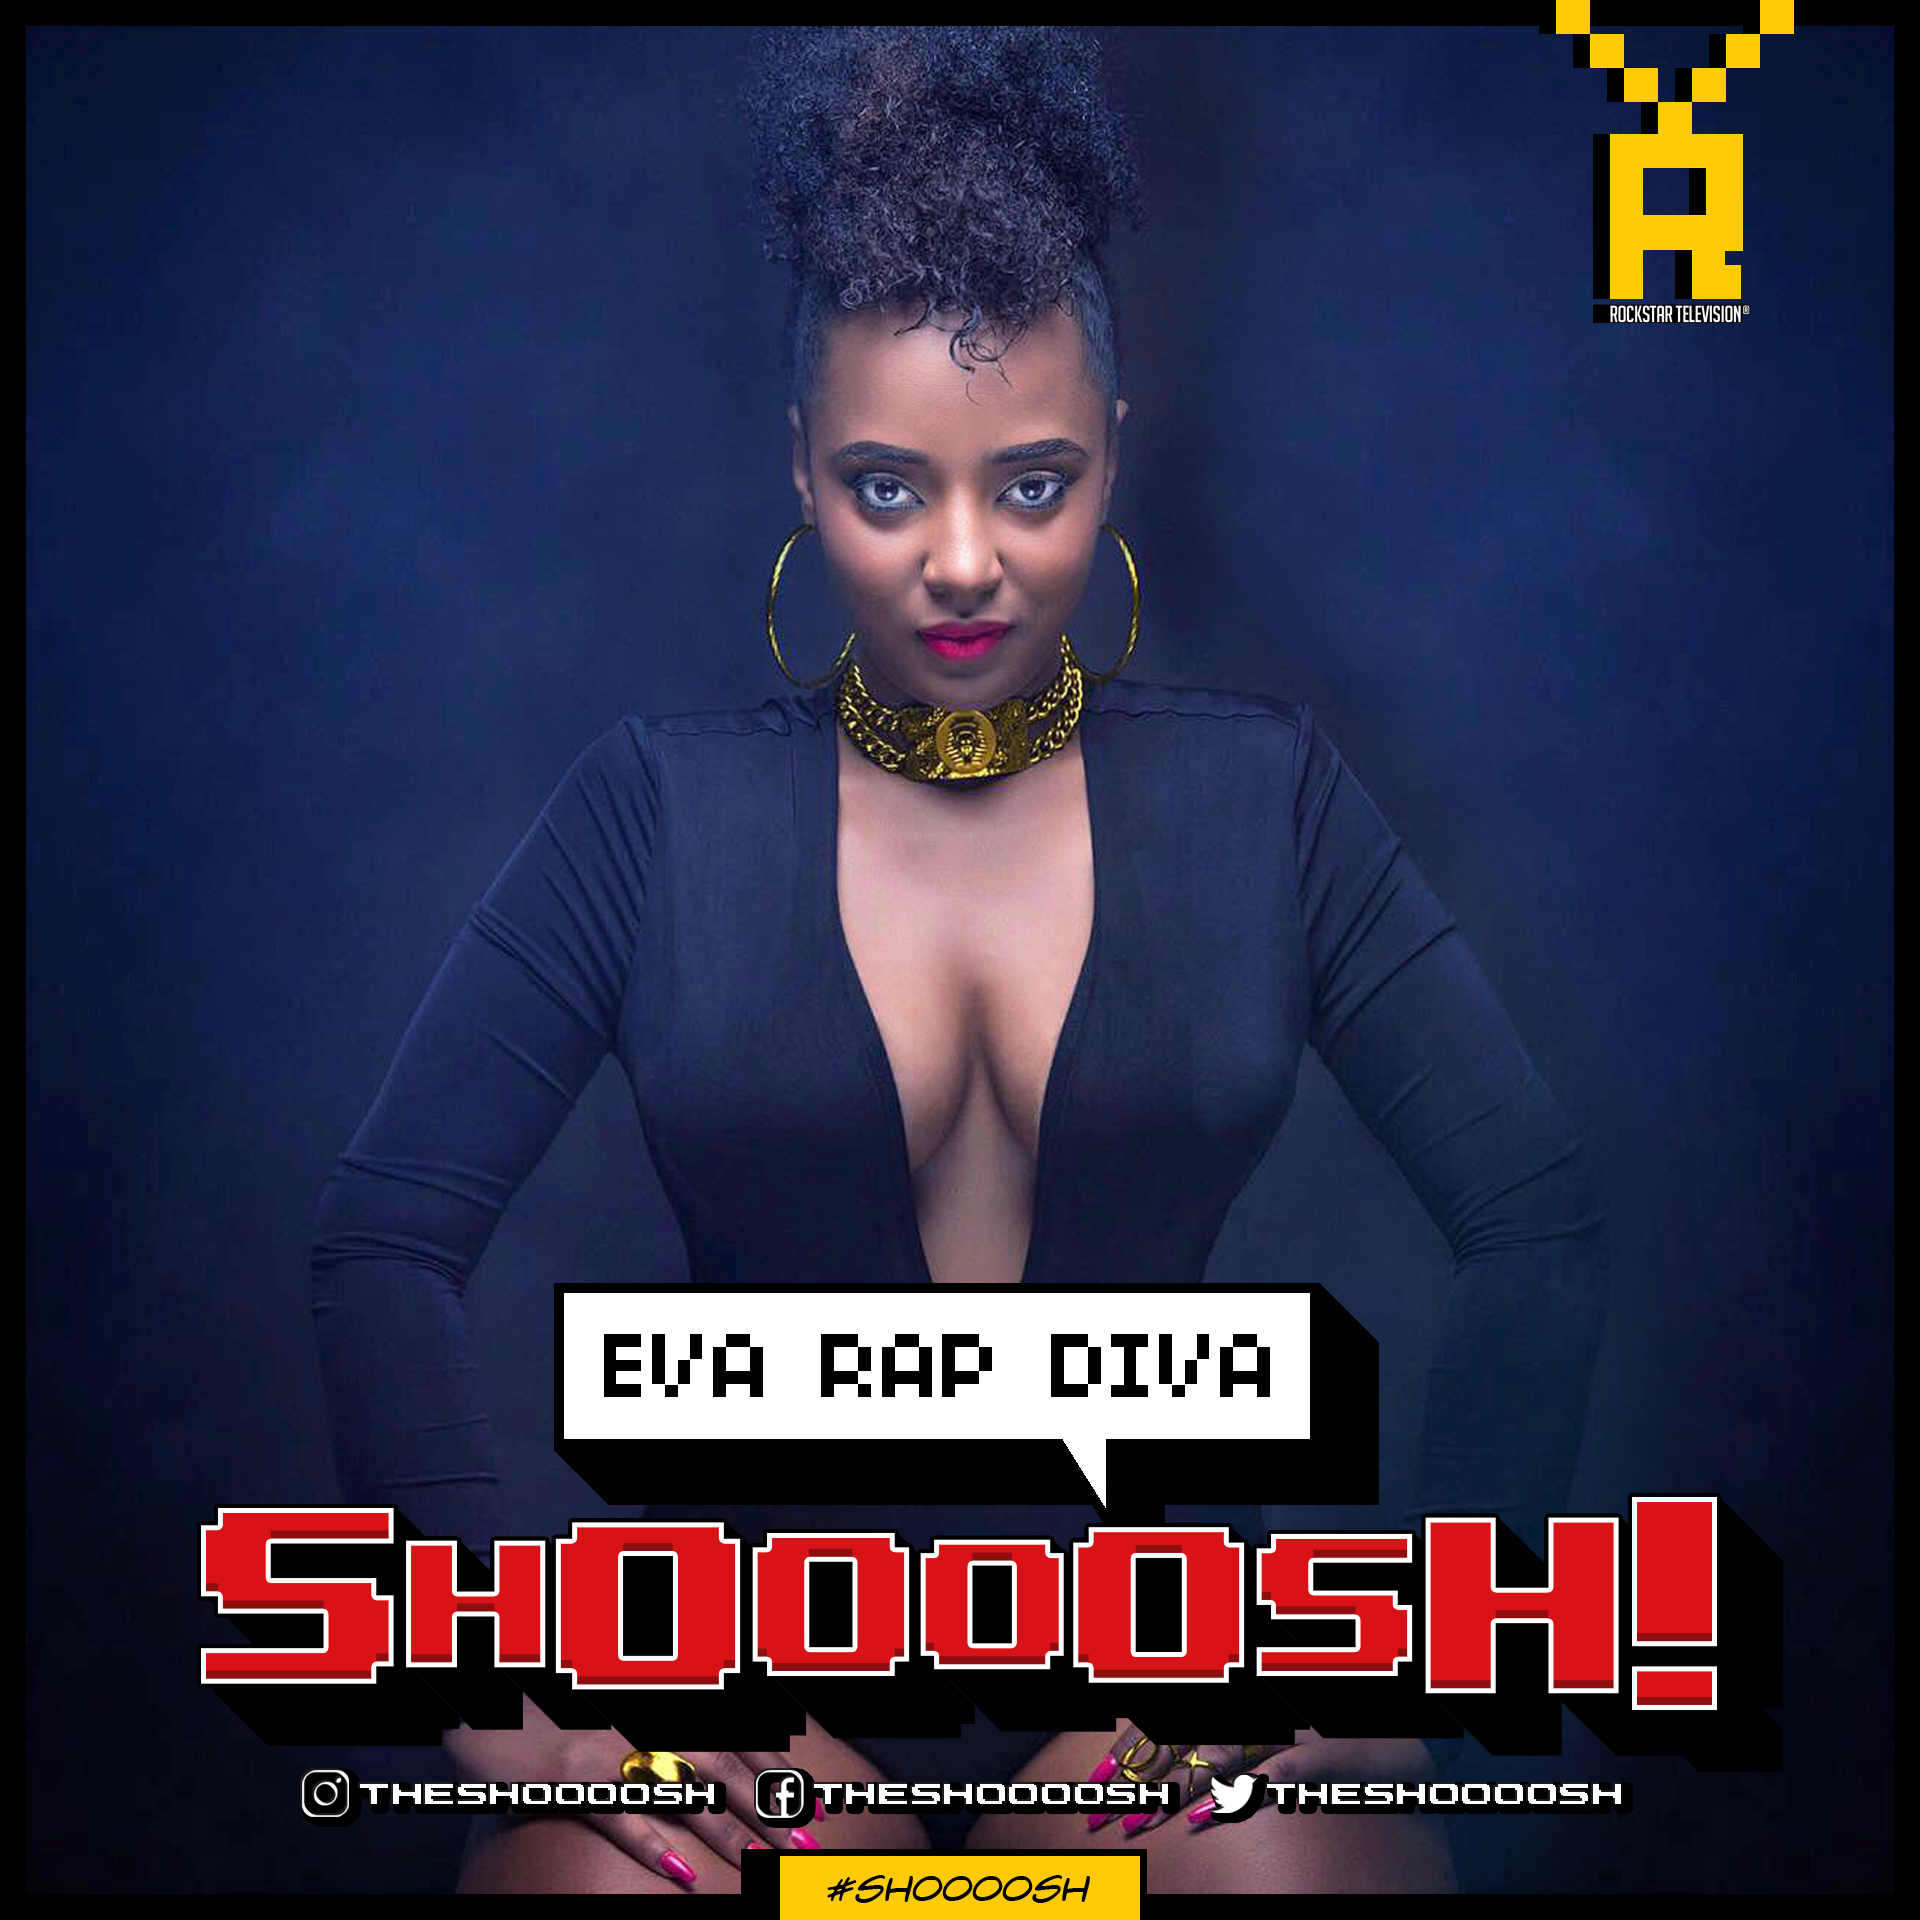 SHOOOOSH! EVARAPDIVA00003